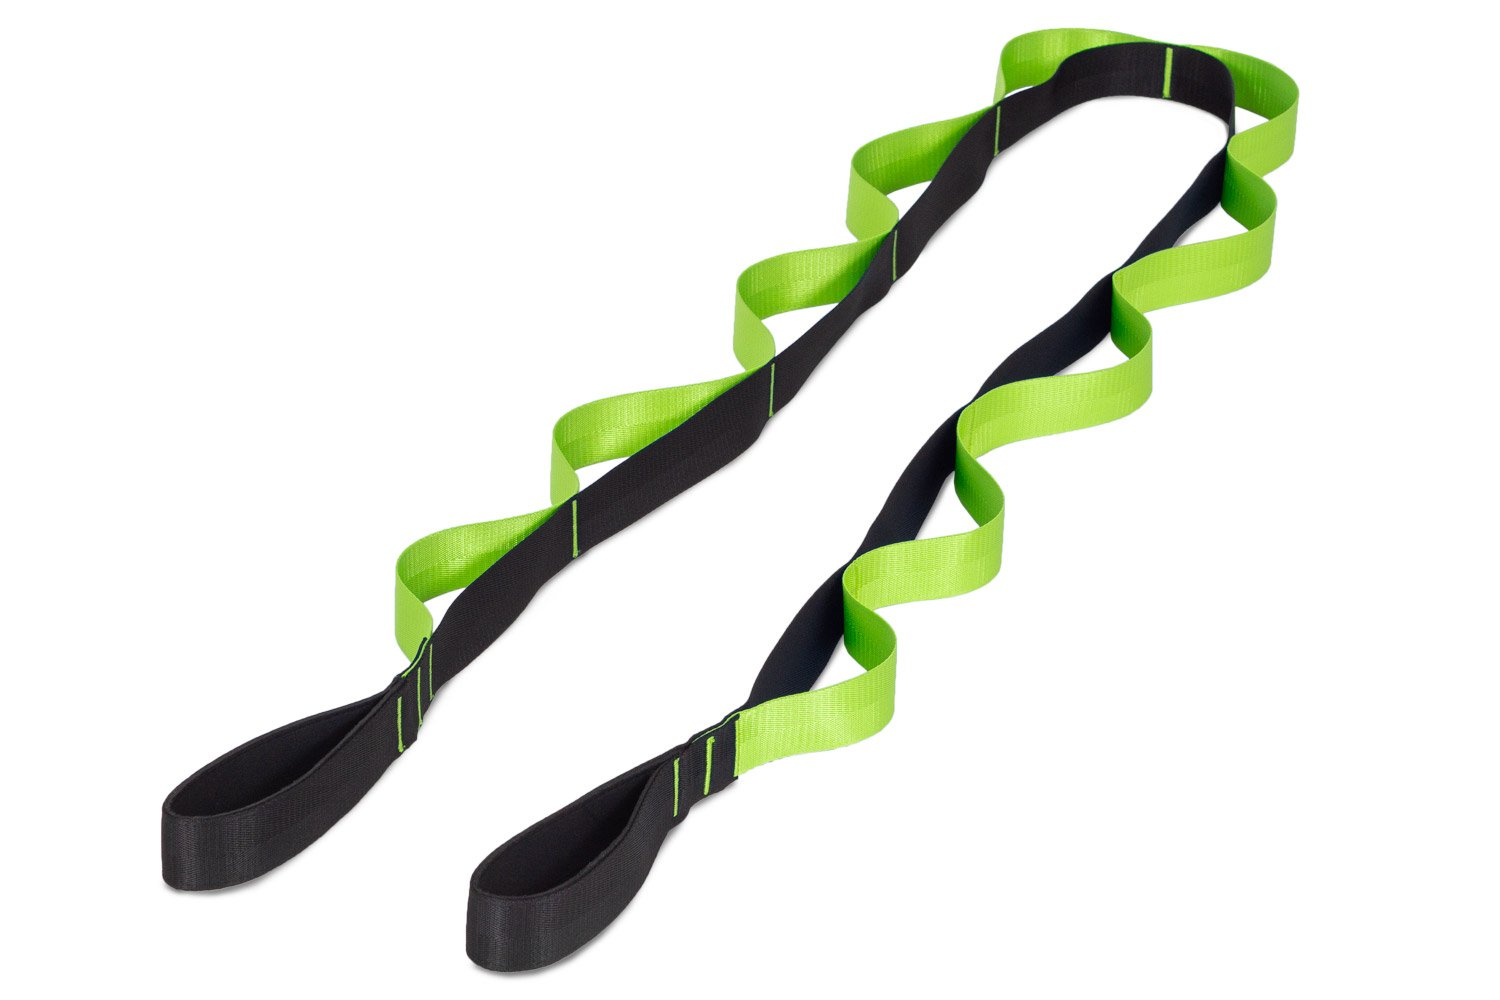 Black-Green Multi-Loop Stretching Strap